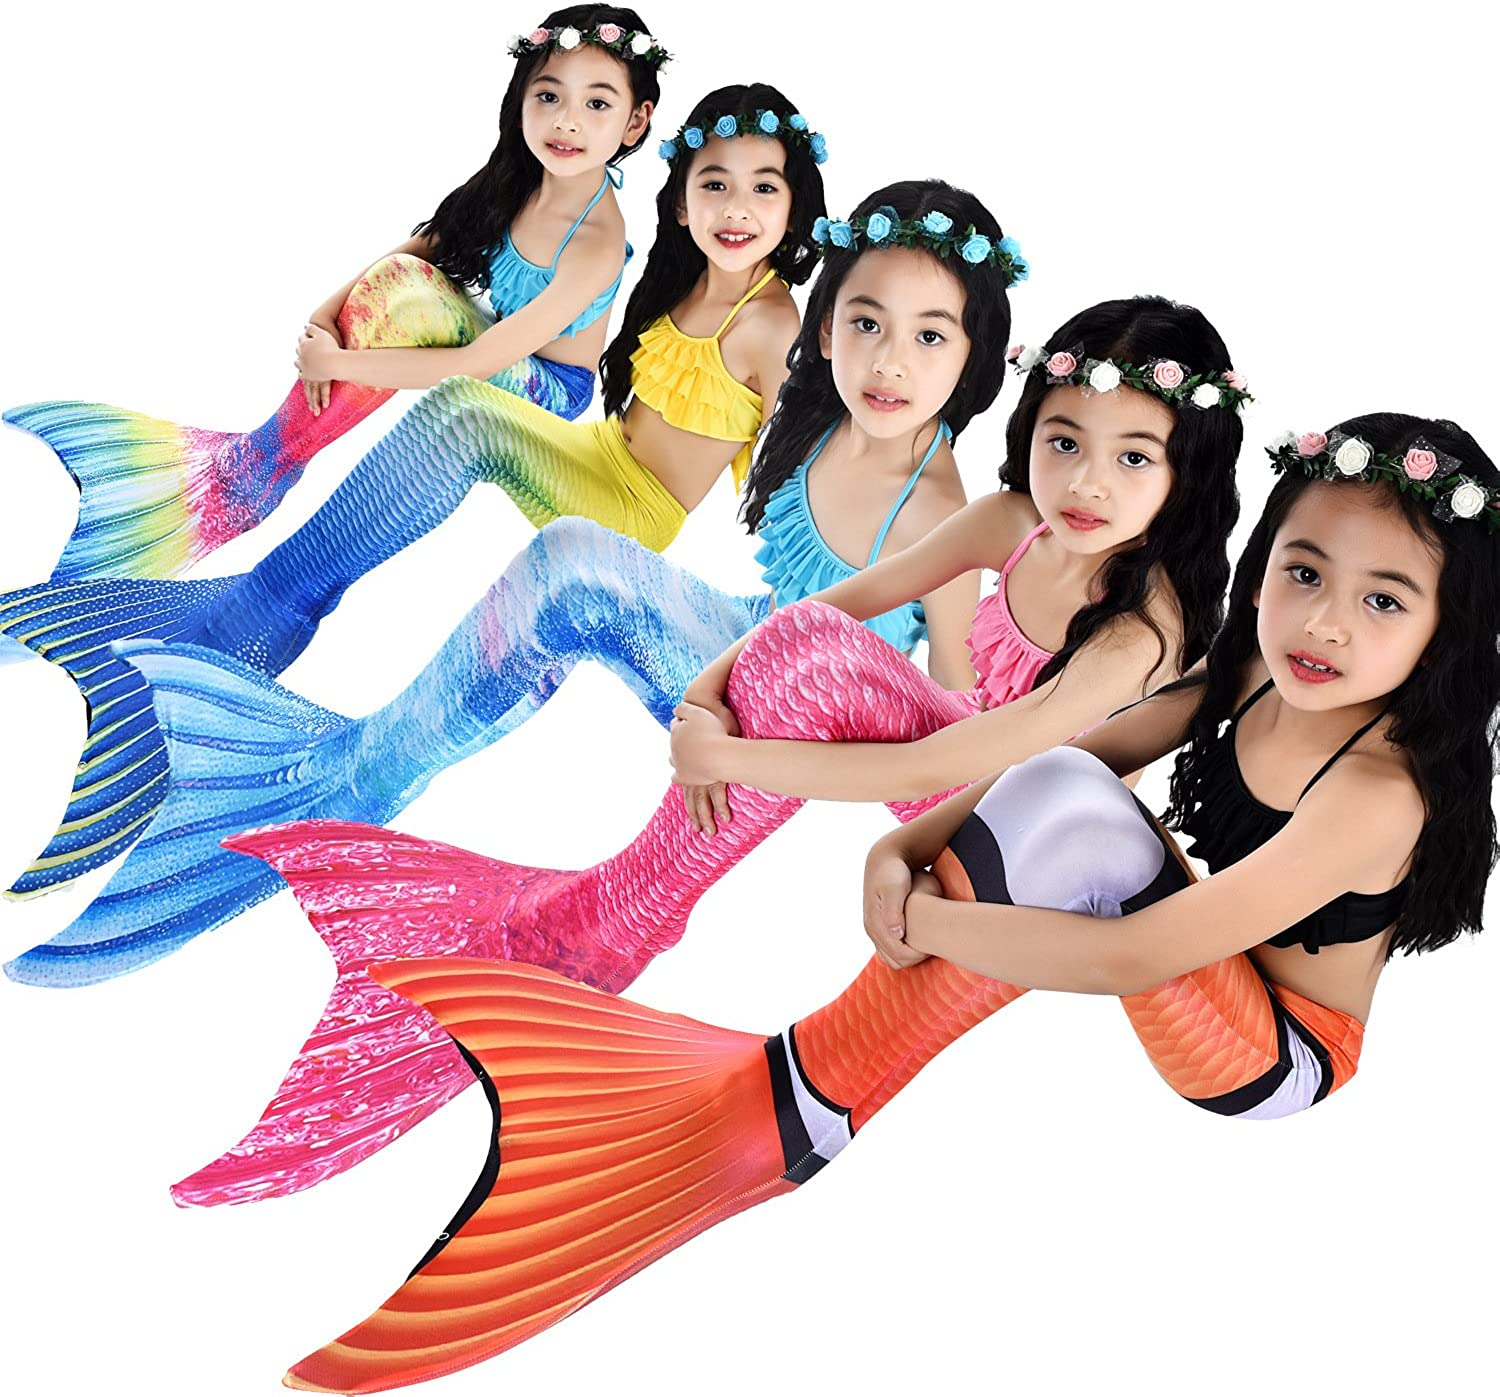 Panmeihua Girls Sparkle Mermaid Tail with Monofin Swimwear 4pcs Sets for Kids